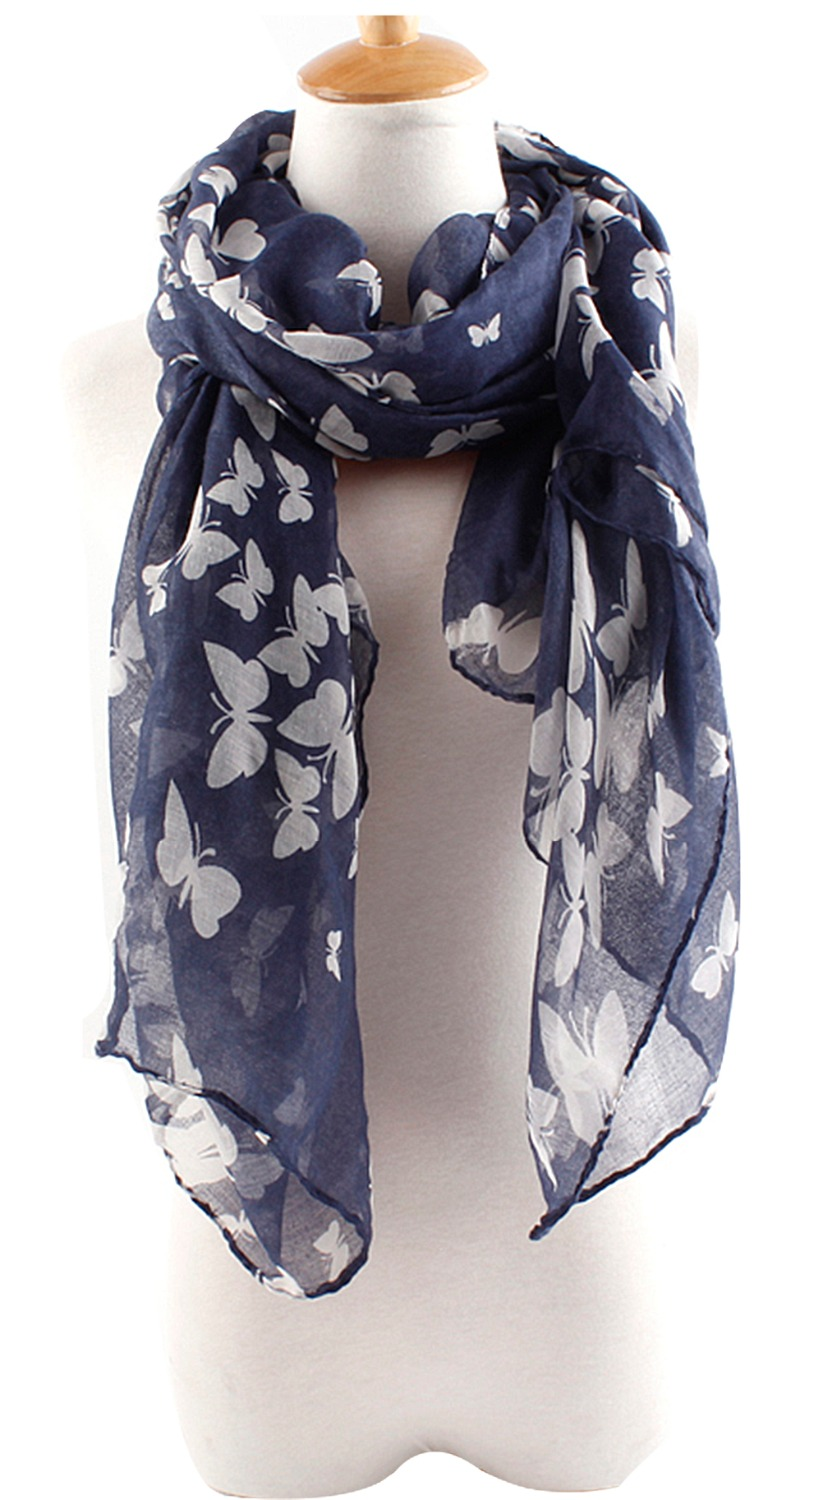 2015 Fashion Women Scarfs Butterfly Print Scarf Elegant Long Scarves Neck Wrap Stole Neckerchief - Shenzhen Sundah Tech Co., Ltd.(Craft & Gift Dept. store)